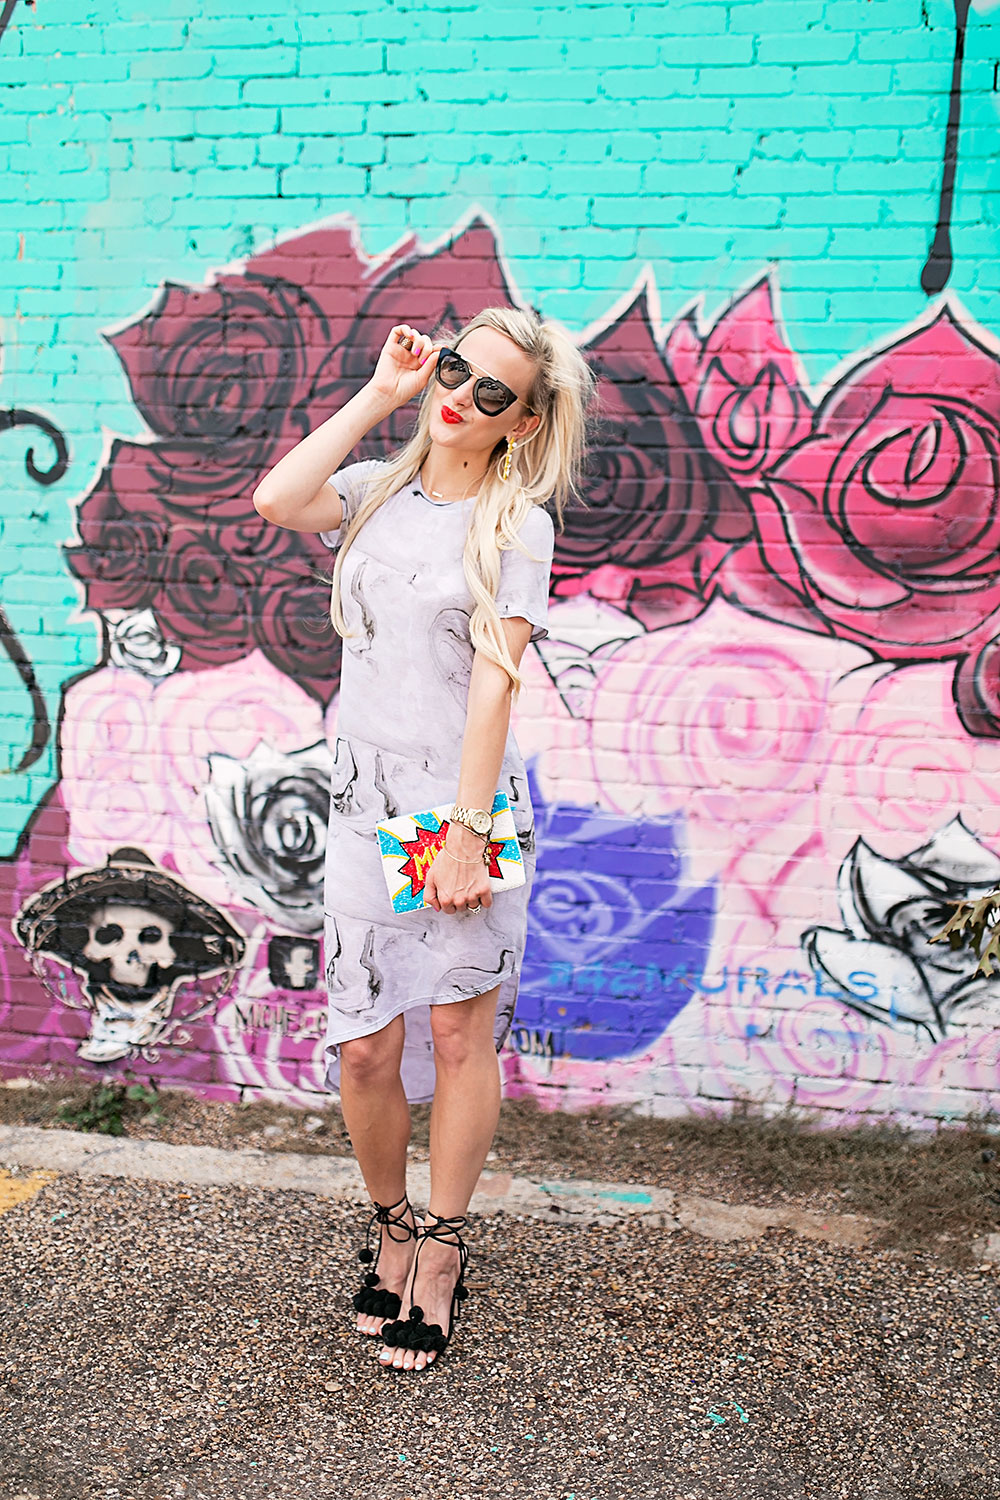 vandi-fair-dallas-fashion-blog-lauren-vandiver-southern-texas-blogger-nordstrom-michelle-by-commune-tolworth-asymmetric-hem-dress-marble-from-st-xavier-beaded-muah-clutch-3